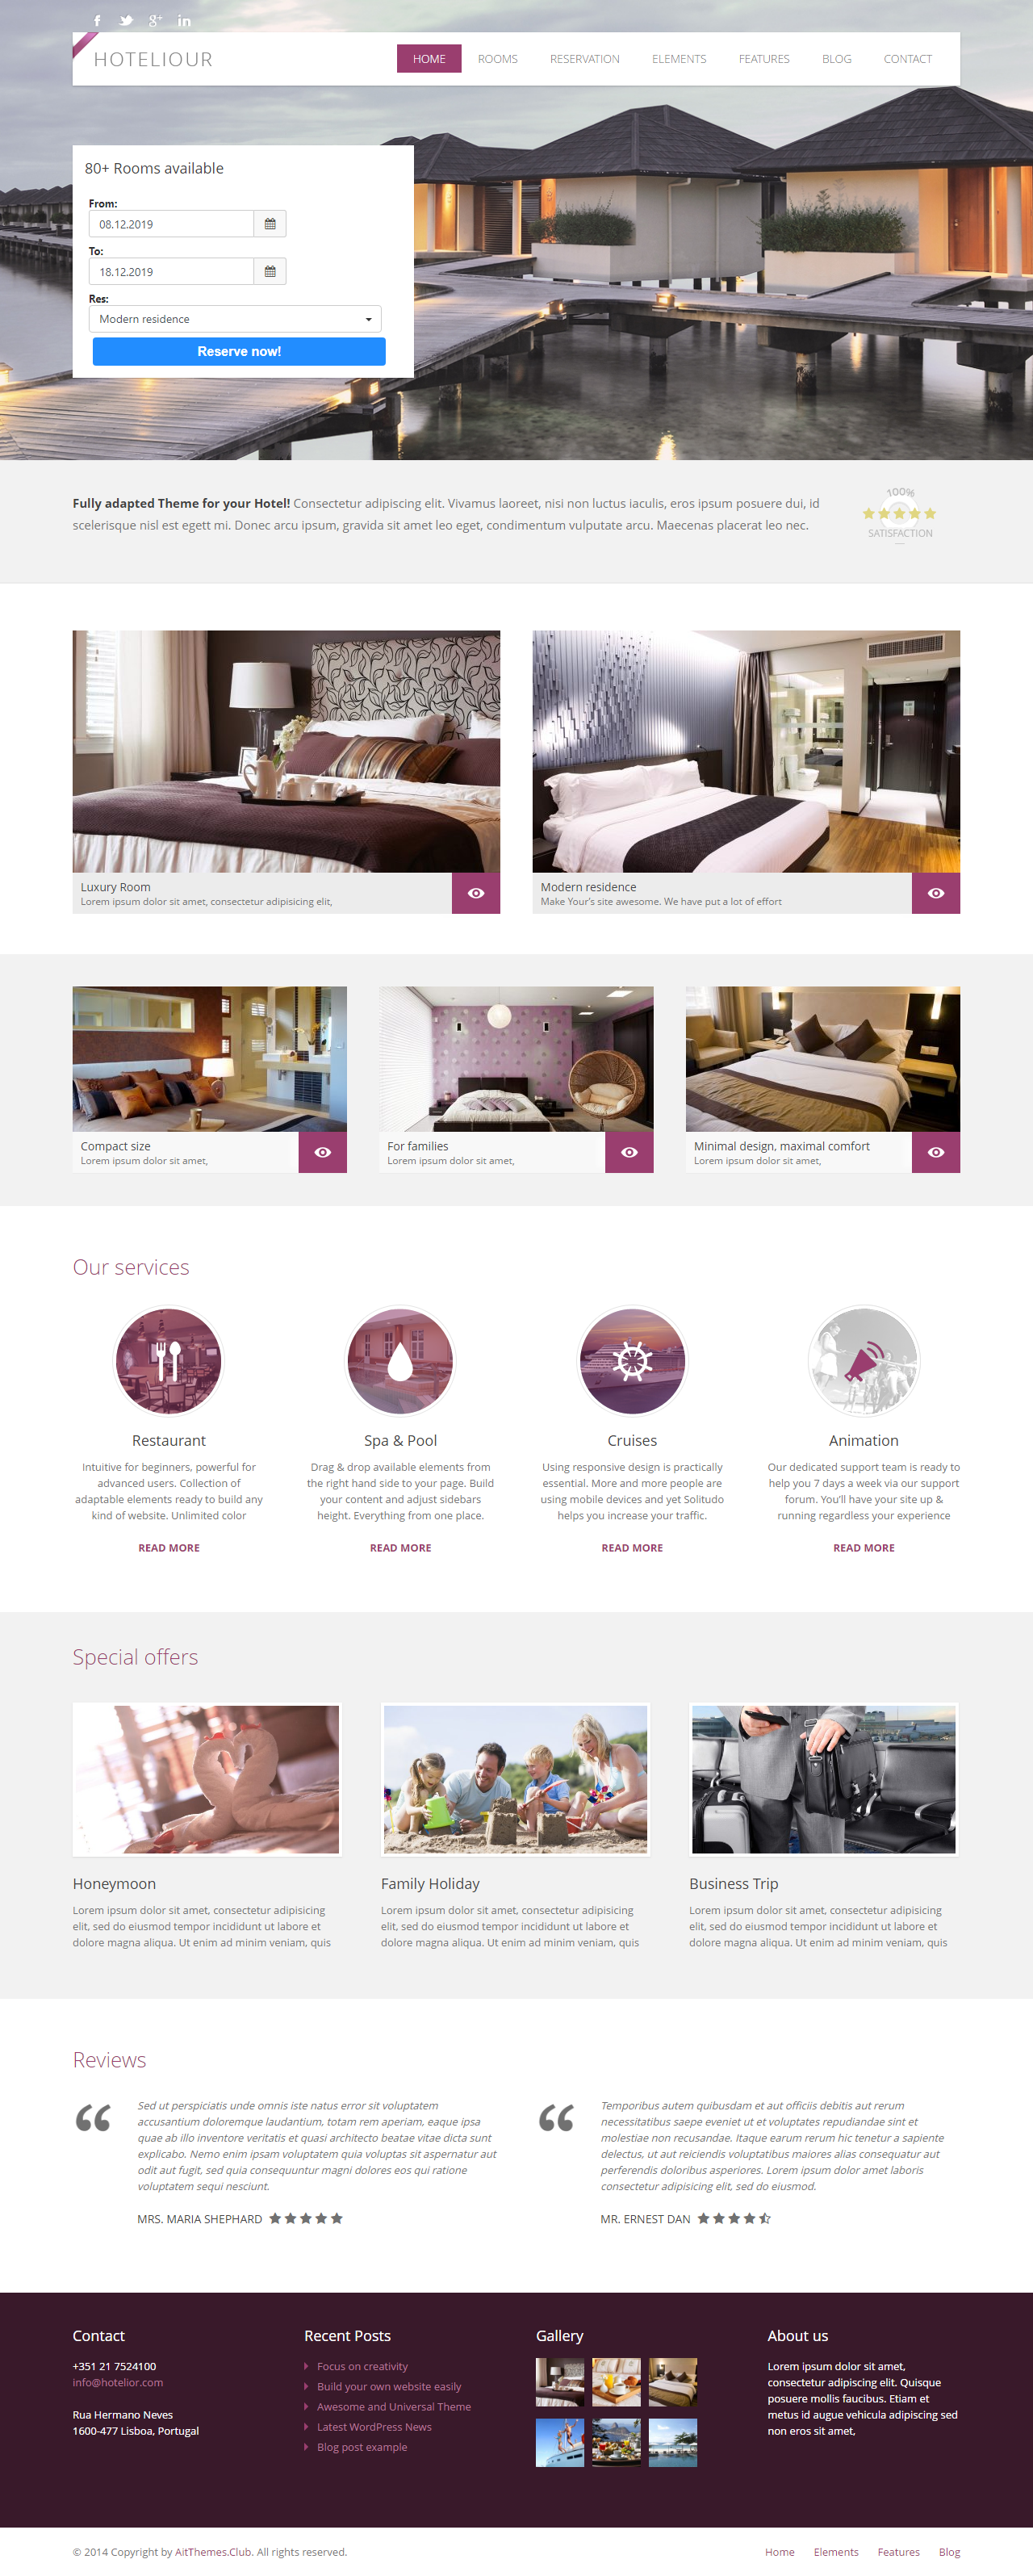 web design services in pune Web Design Services in Pune hoteliour